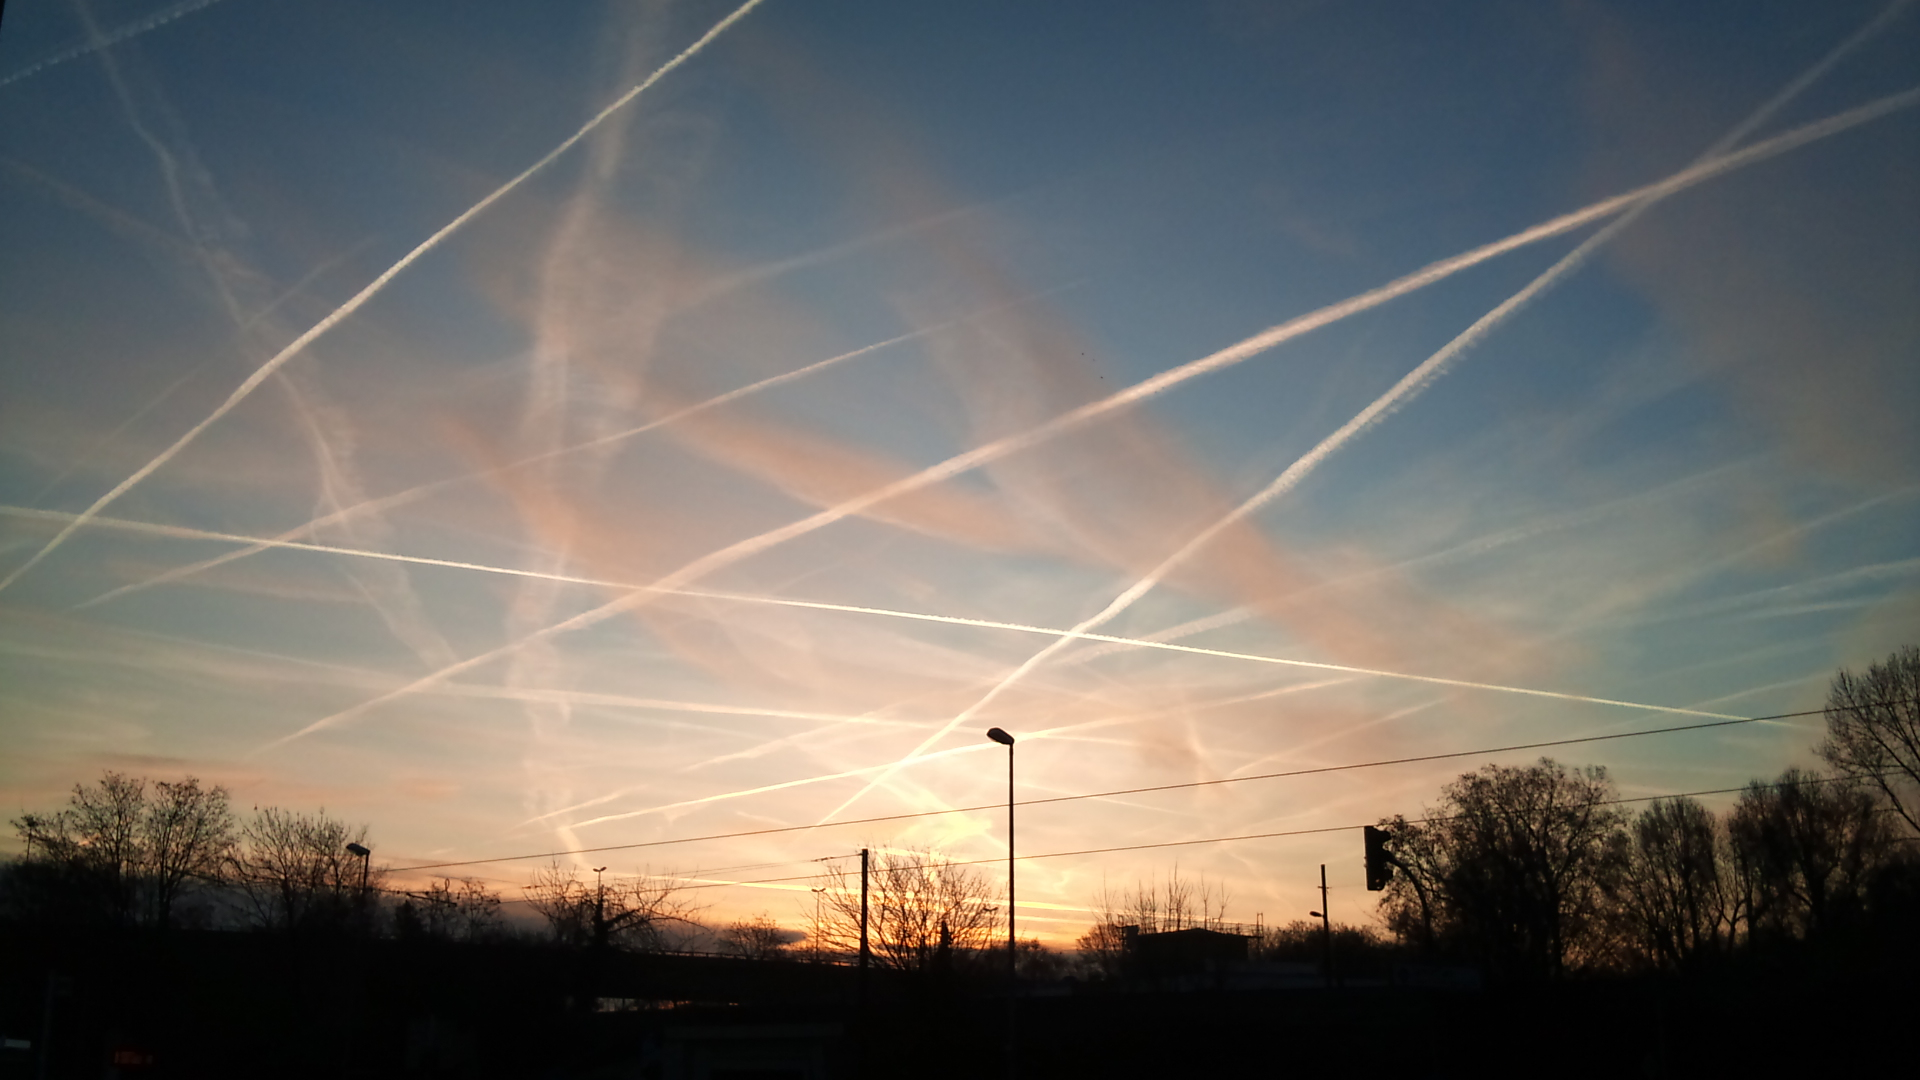 Same media that once deemed chemtrails a conspiracy theory now openly